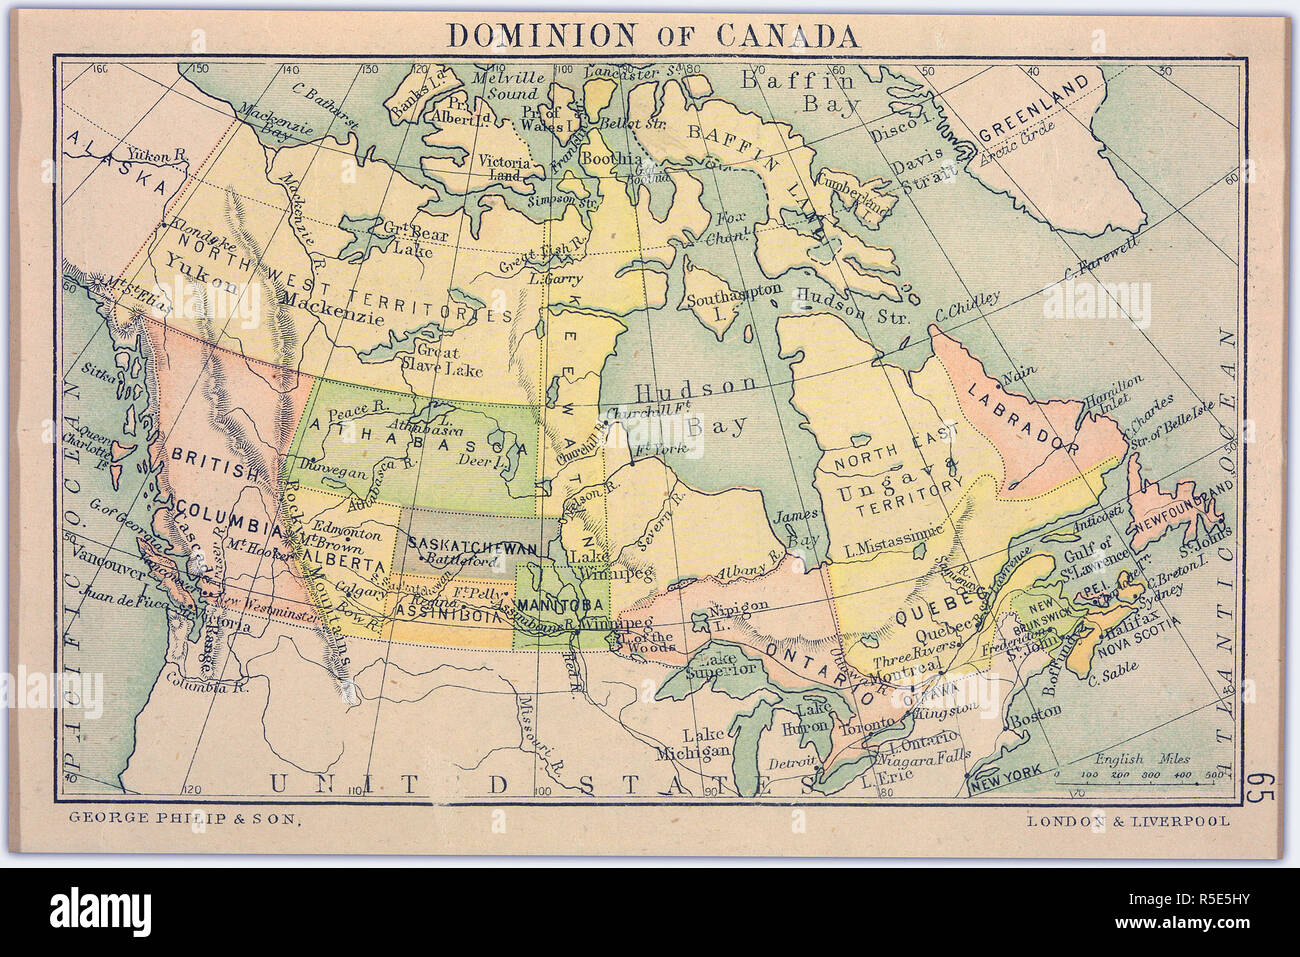 Map Creator.Dominion Of Canada Map Creator Bartholomew J G John George